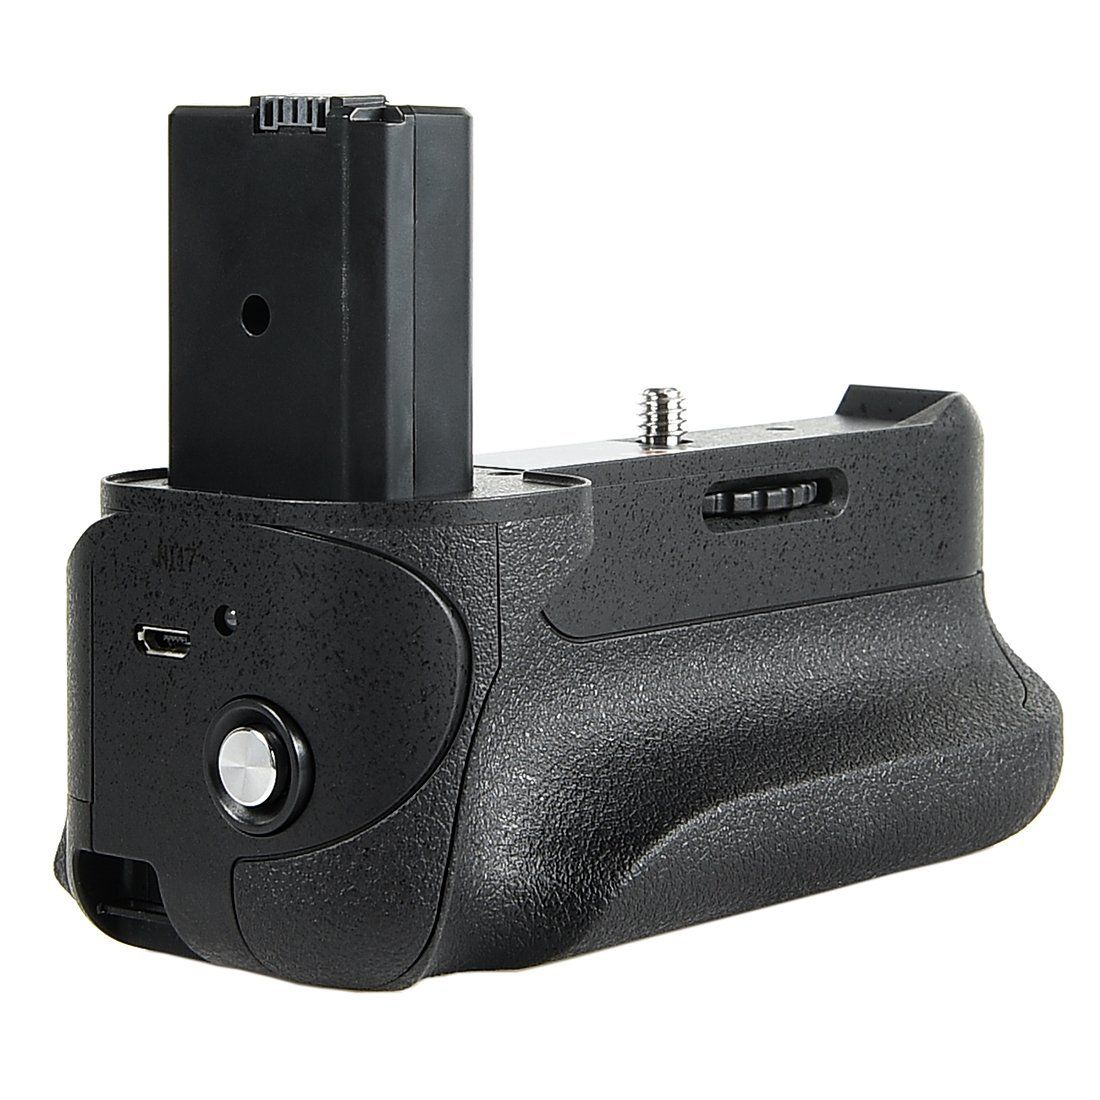 Battery Grip VG-A6500 para Sony A6500